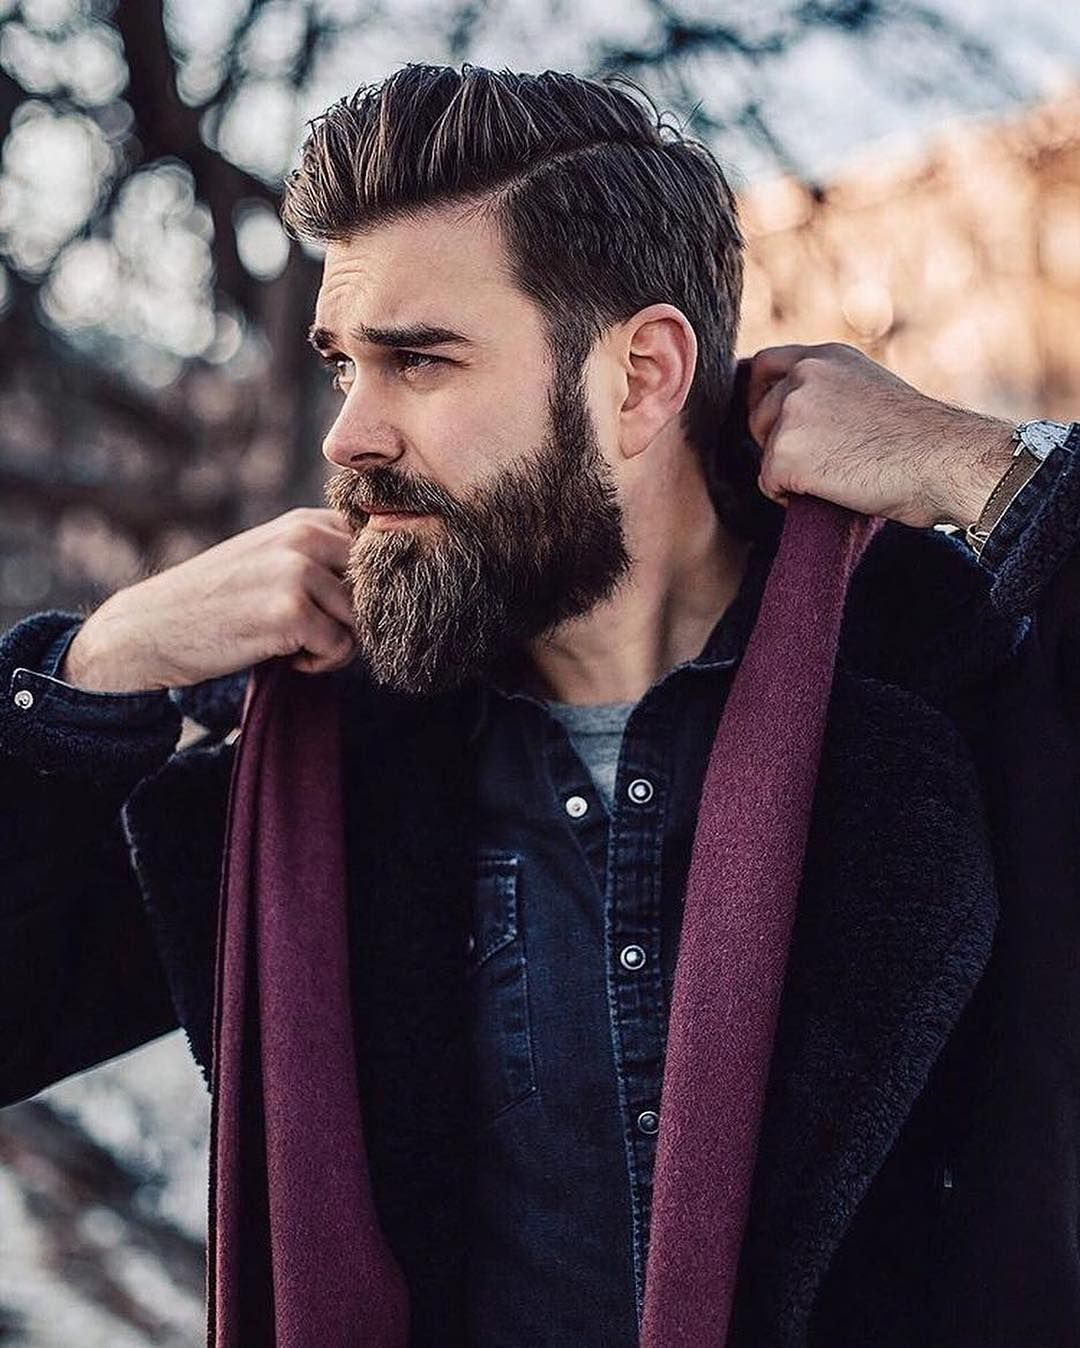 50 trending beard styles for men in 2020 all shapes and